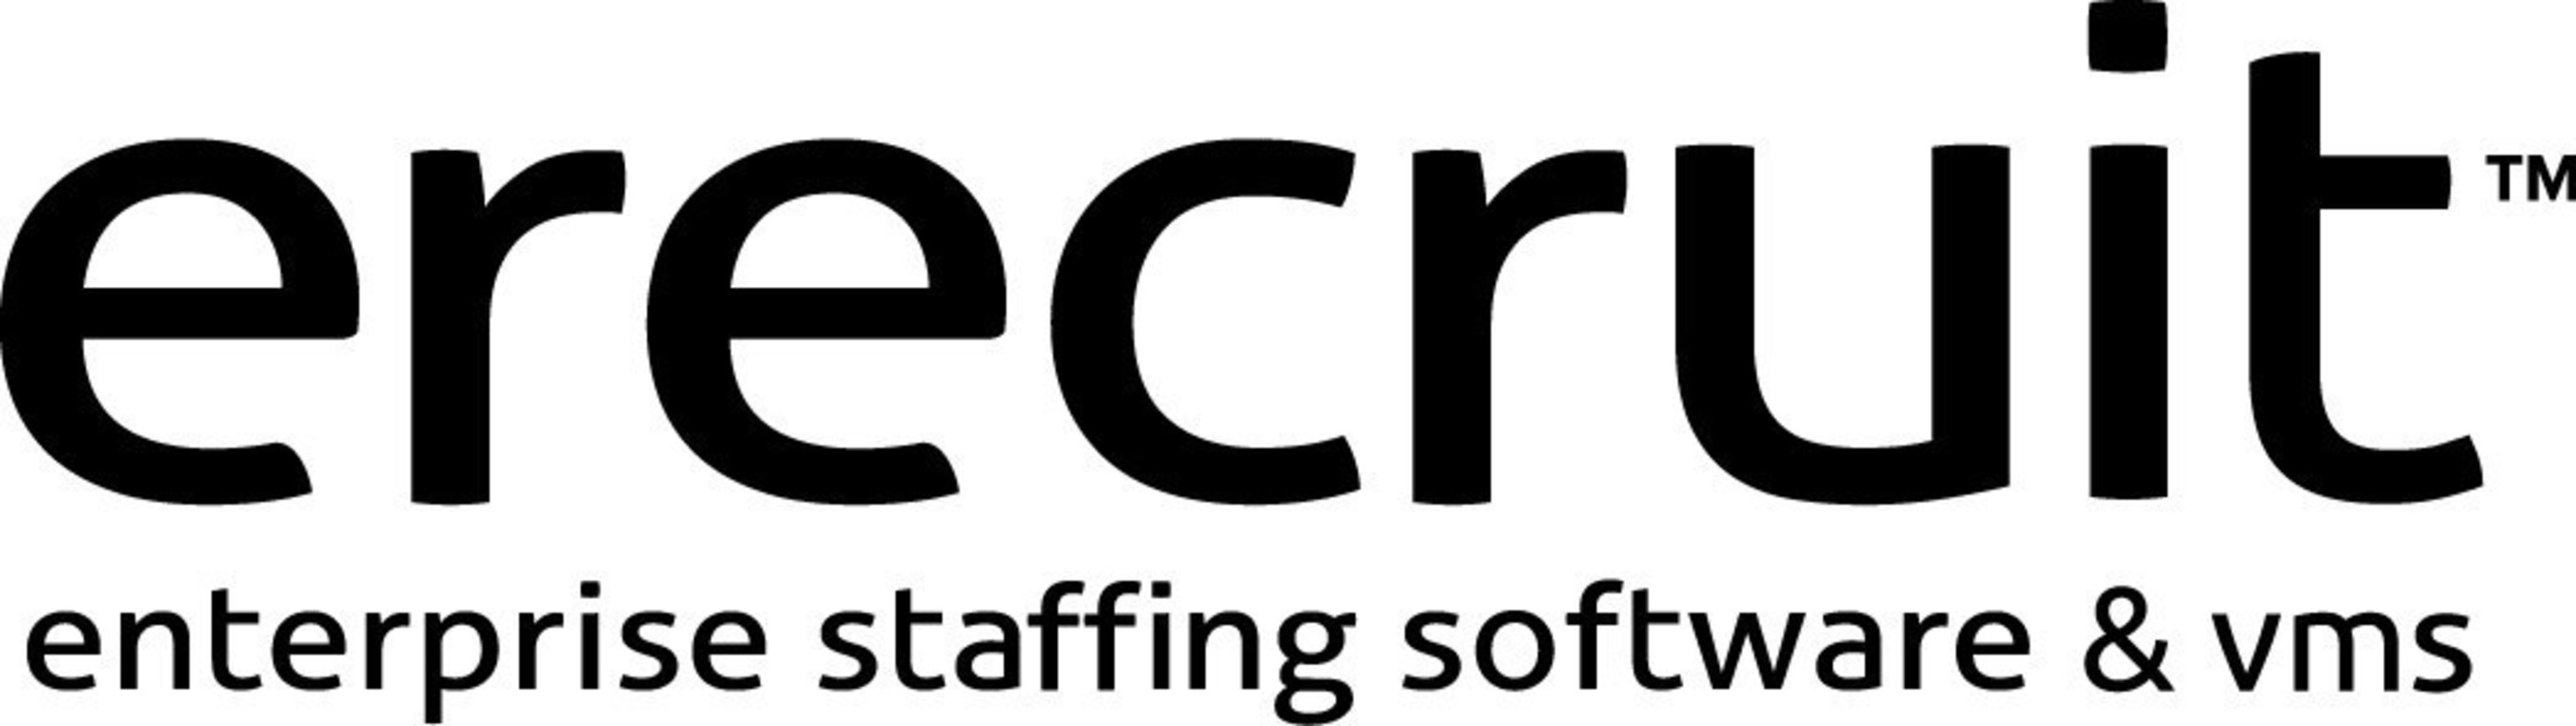 erecruit is the leading innovator in enterprise staffing software, VMS and onboarding solutions for large ...